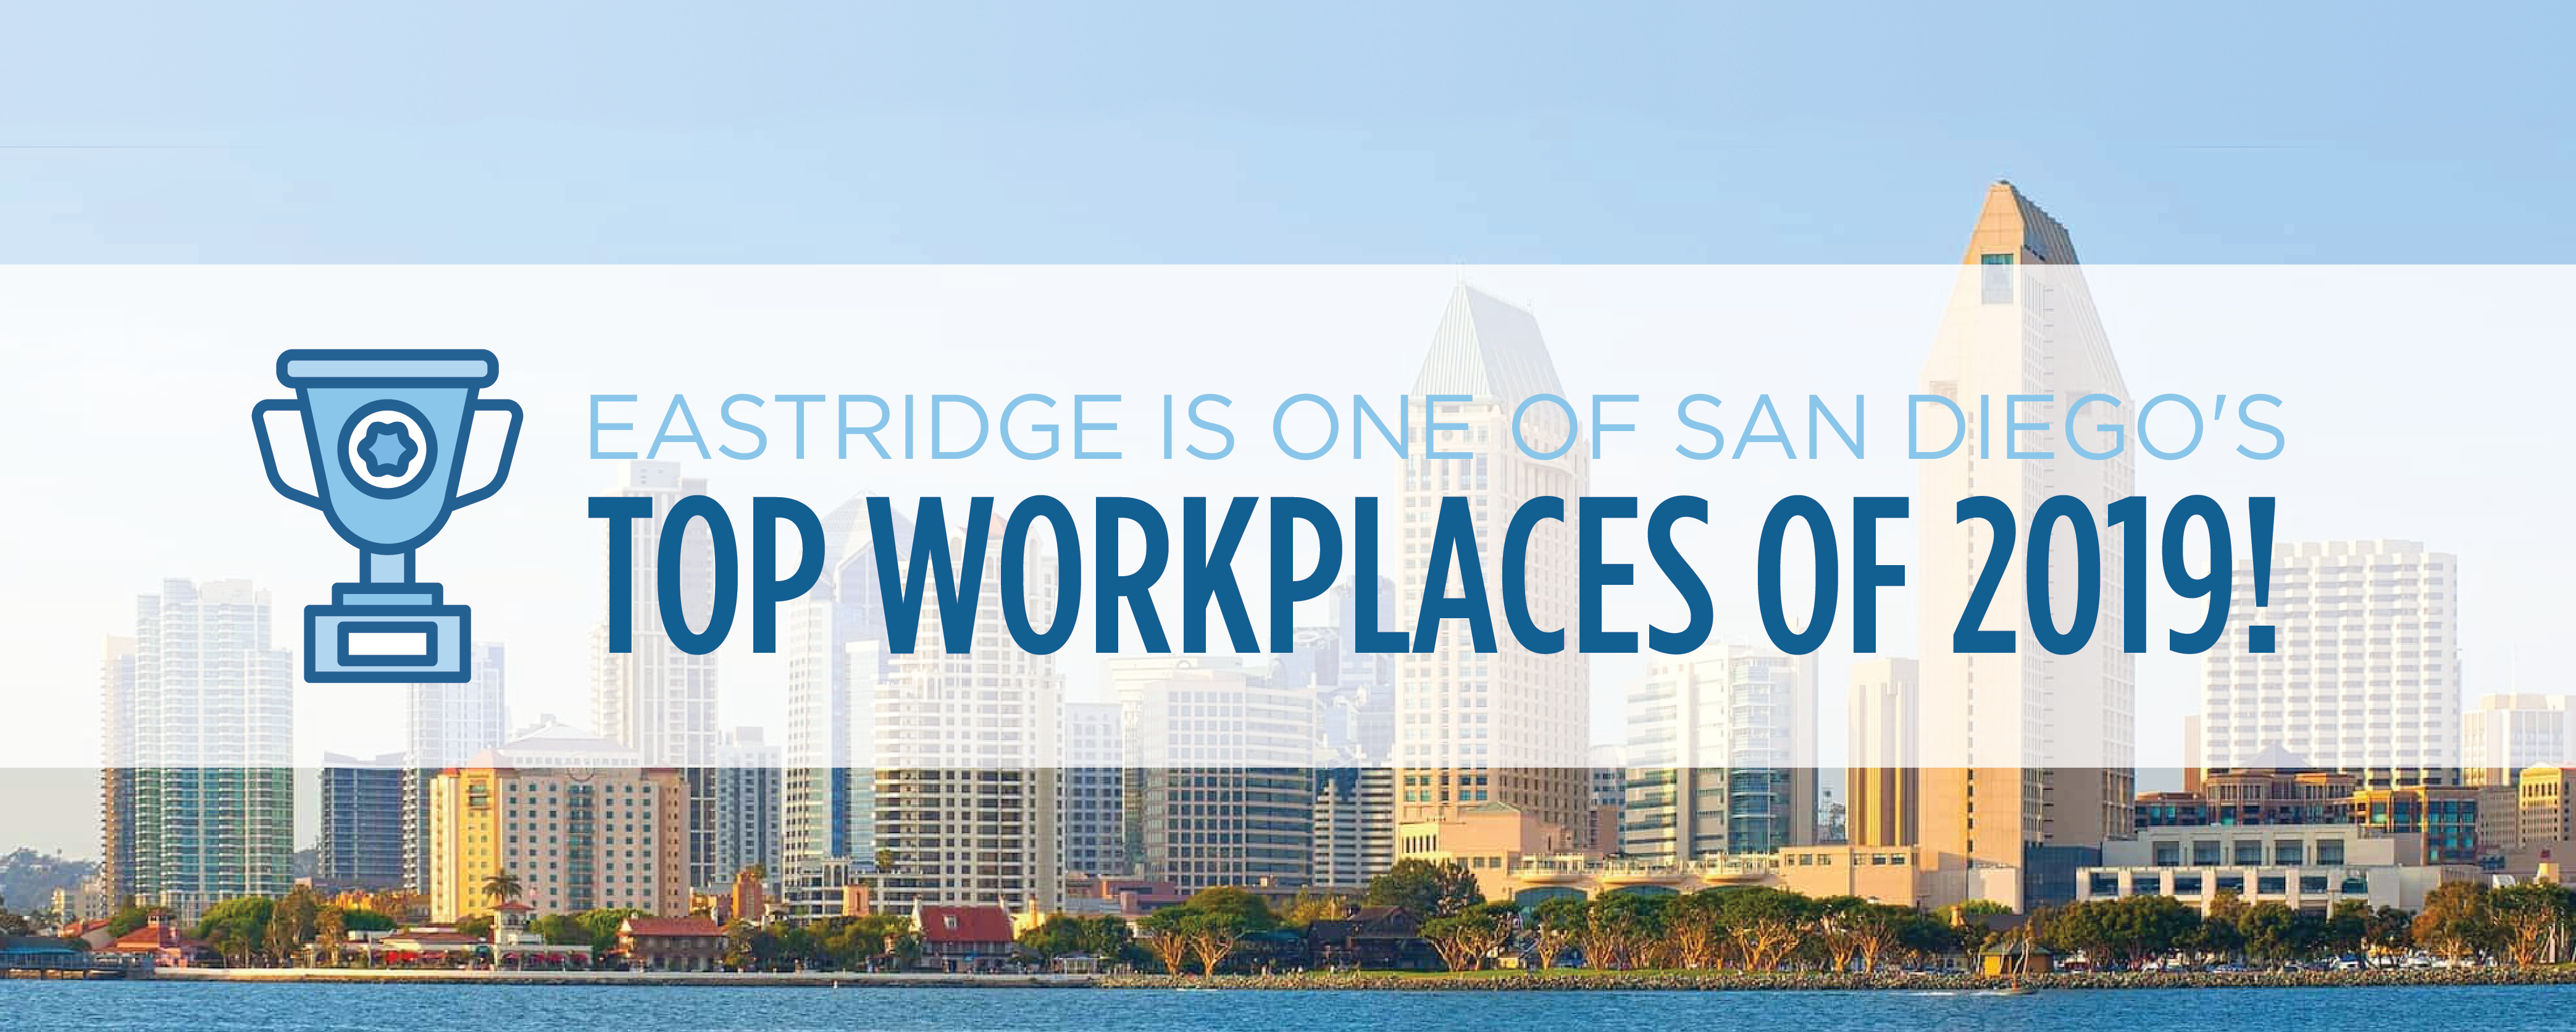 Eastridge is one of San Diego's top workplaces of 2019!